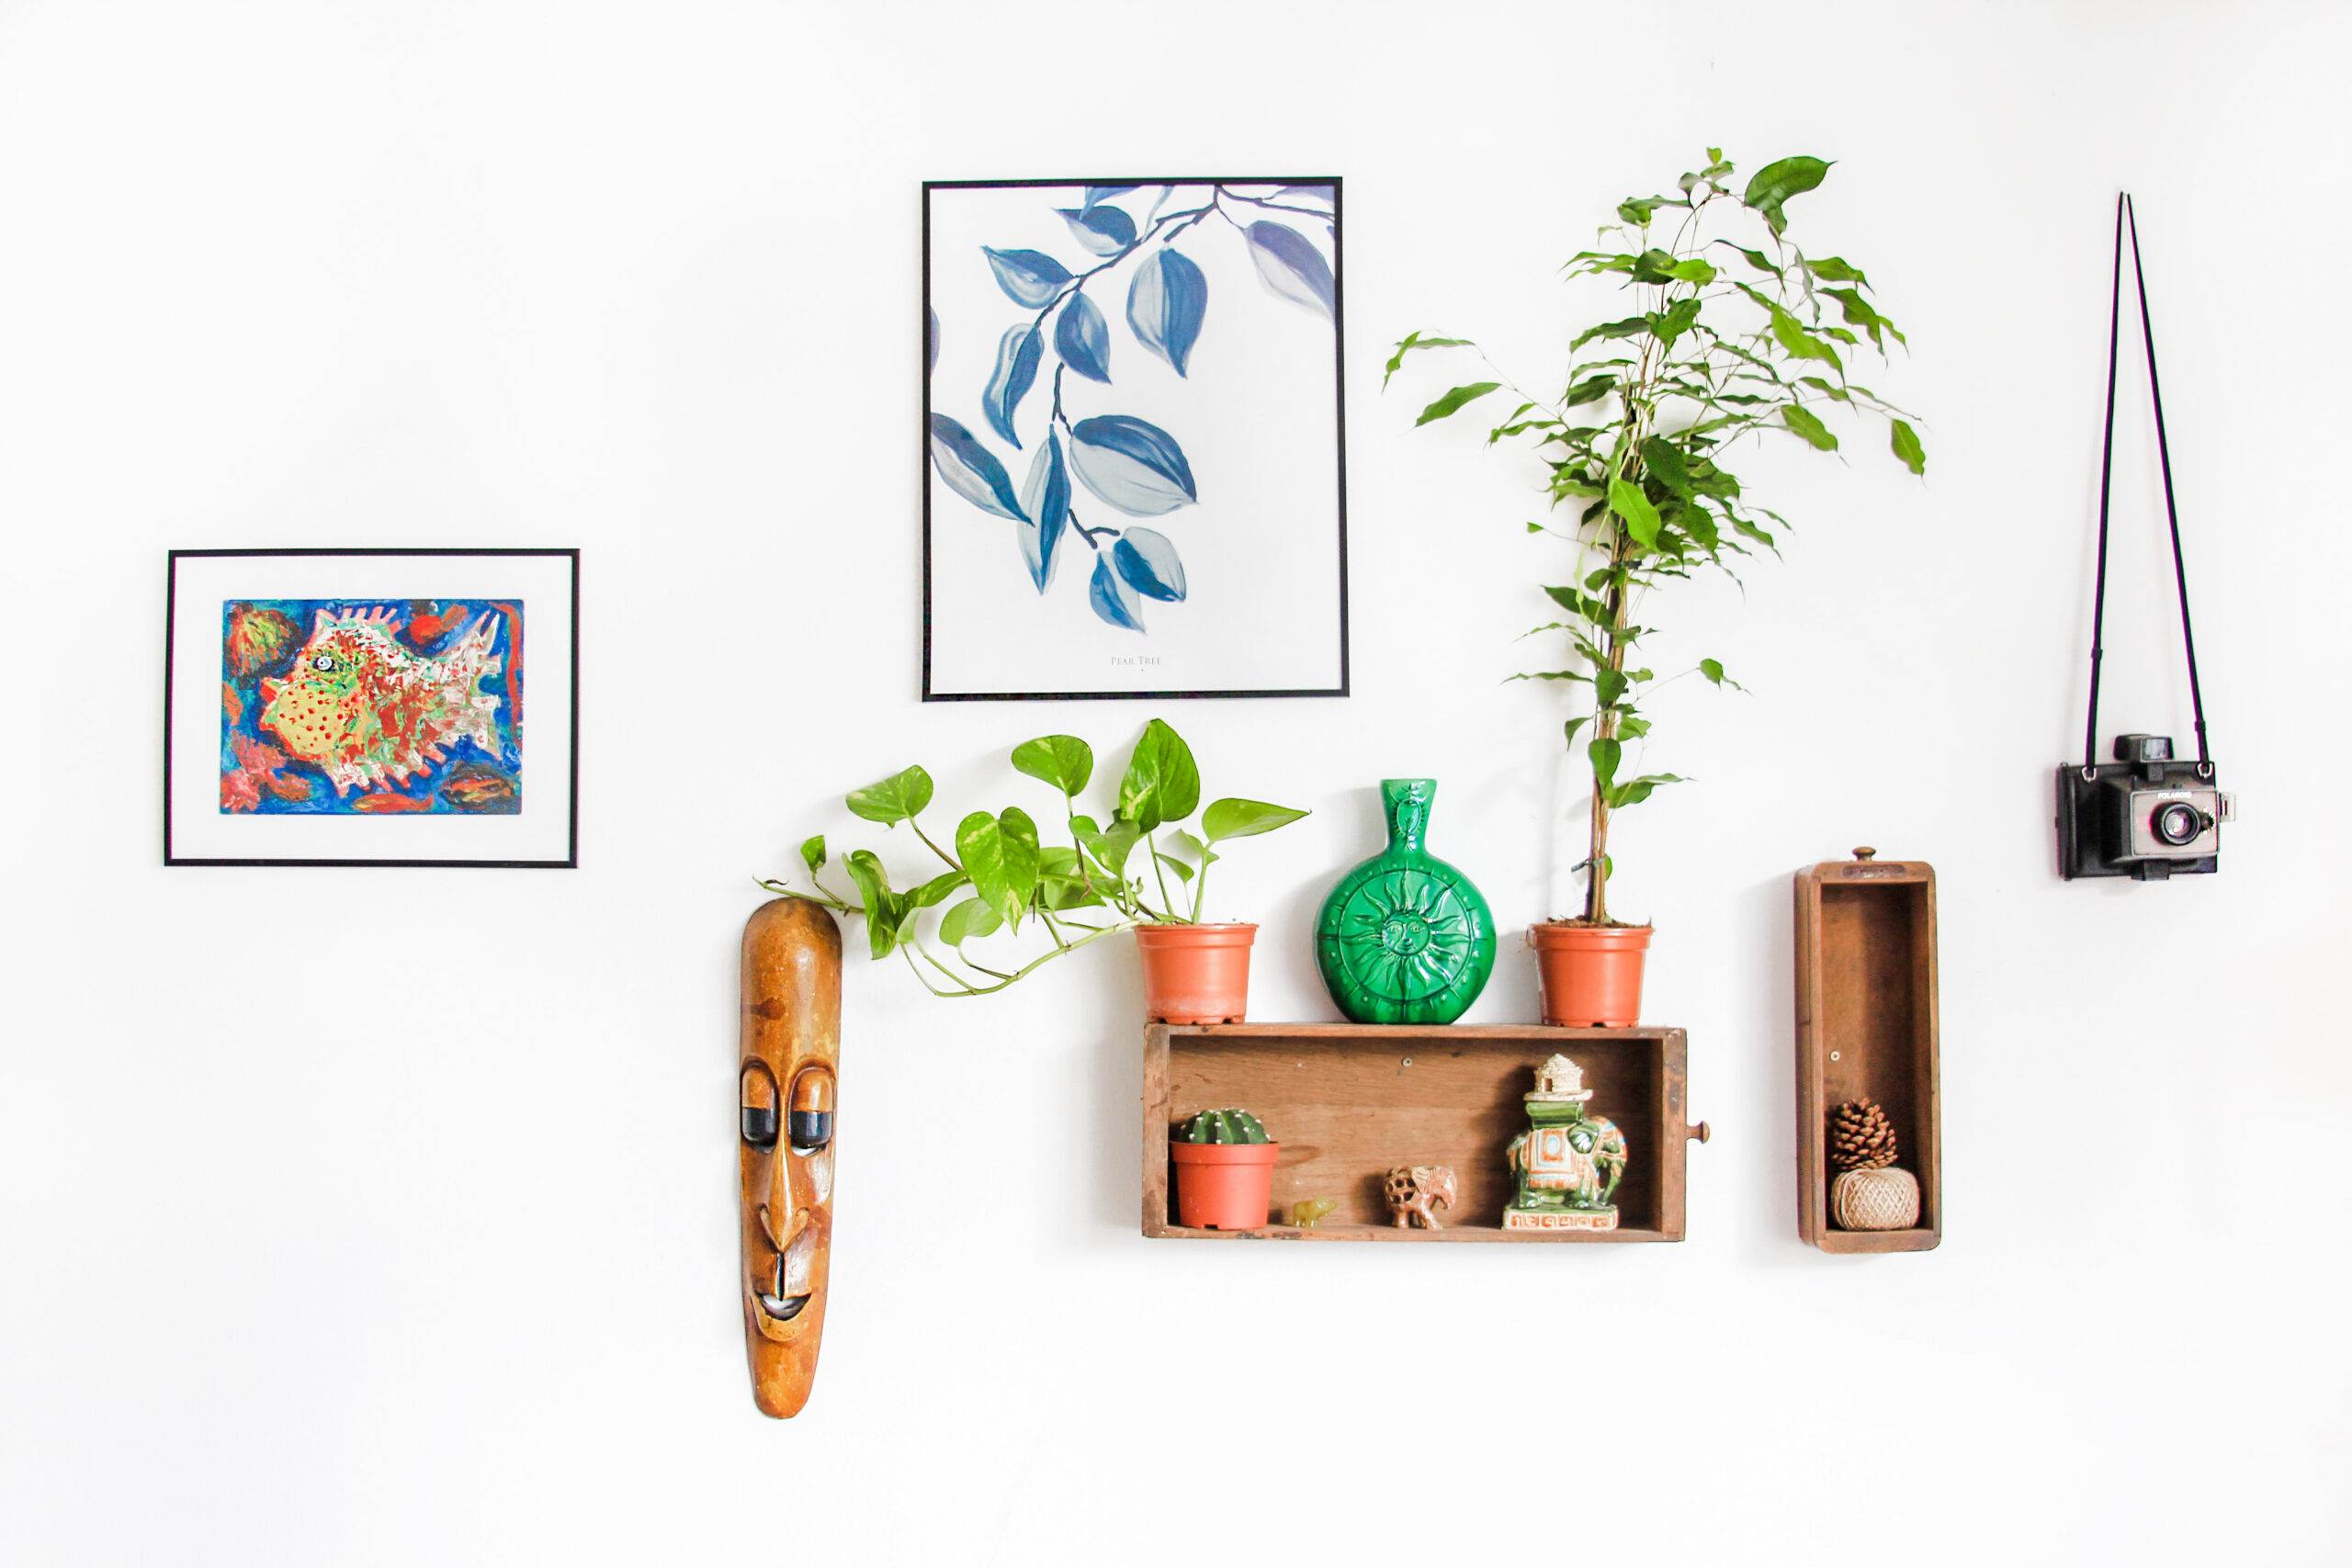 wall with decoration such as painting, wooden mask and vases on shelf